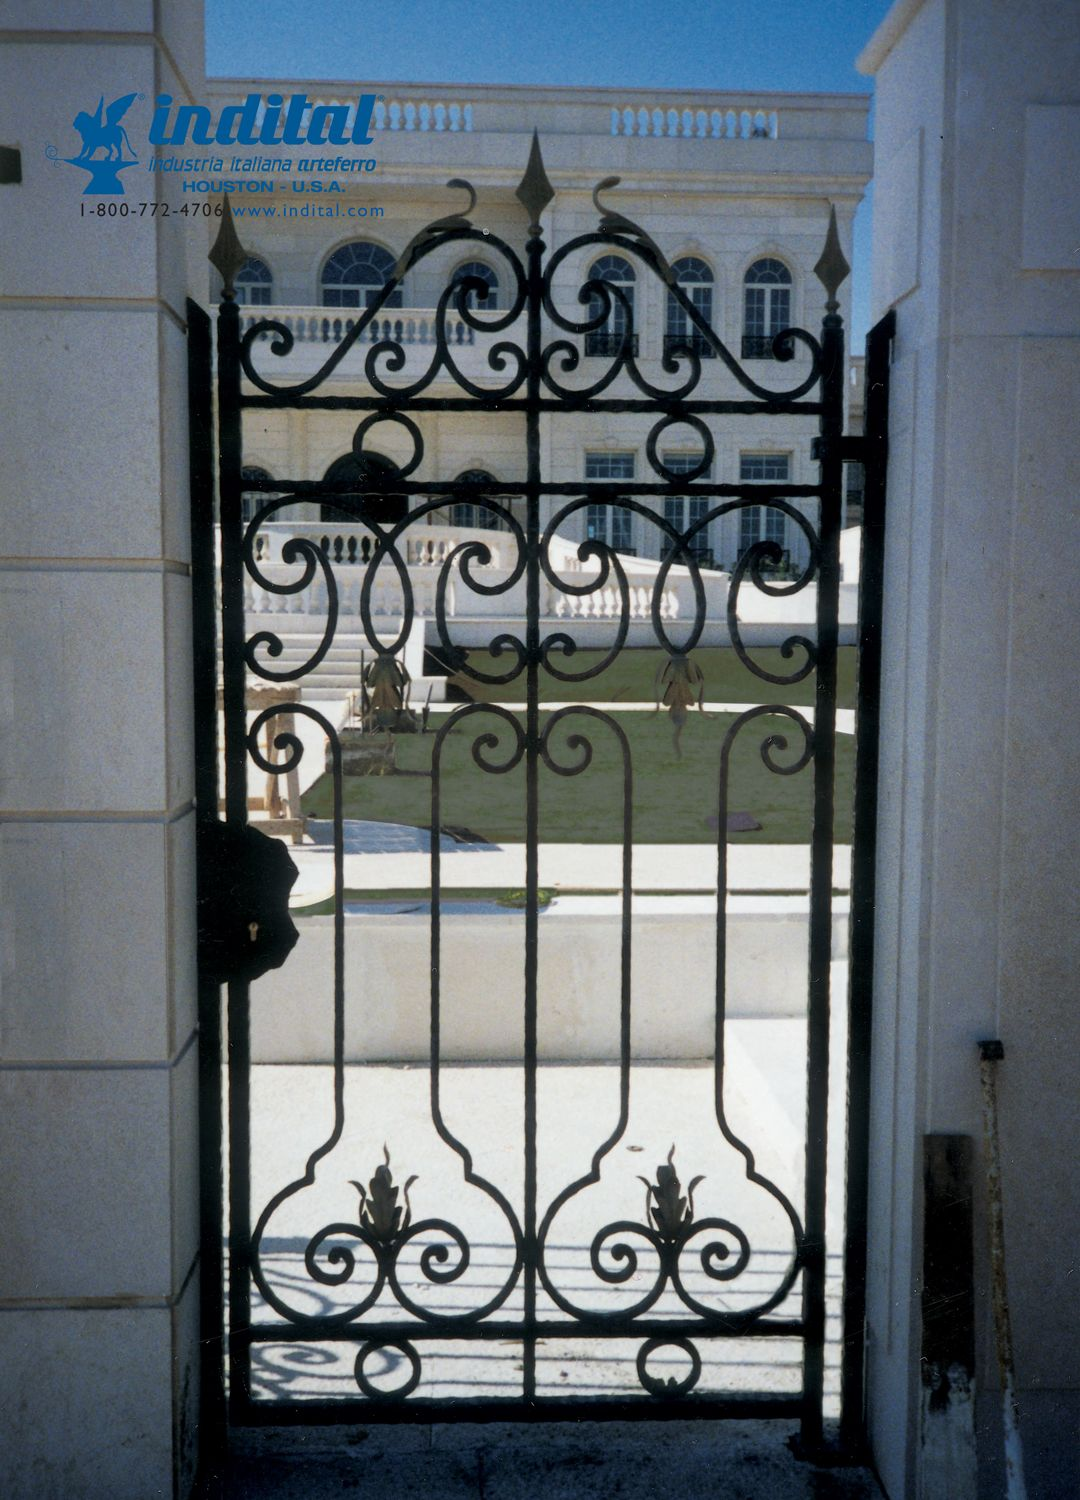 Our Wrought Iron Bars And Scrolls Make An Elegant Gate Gate